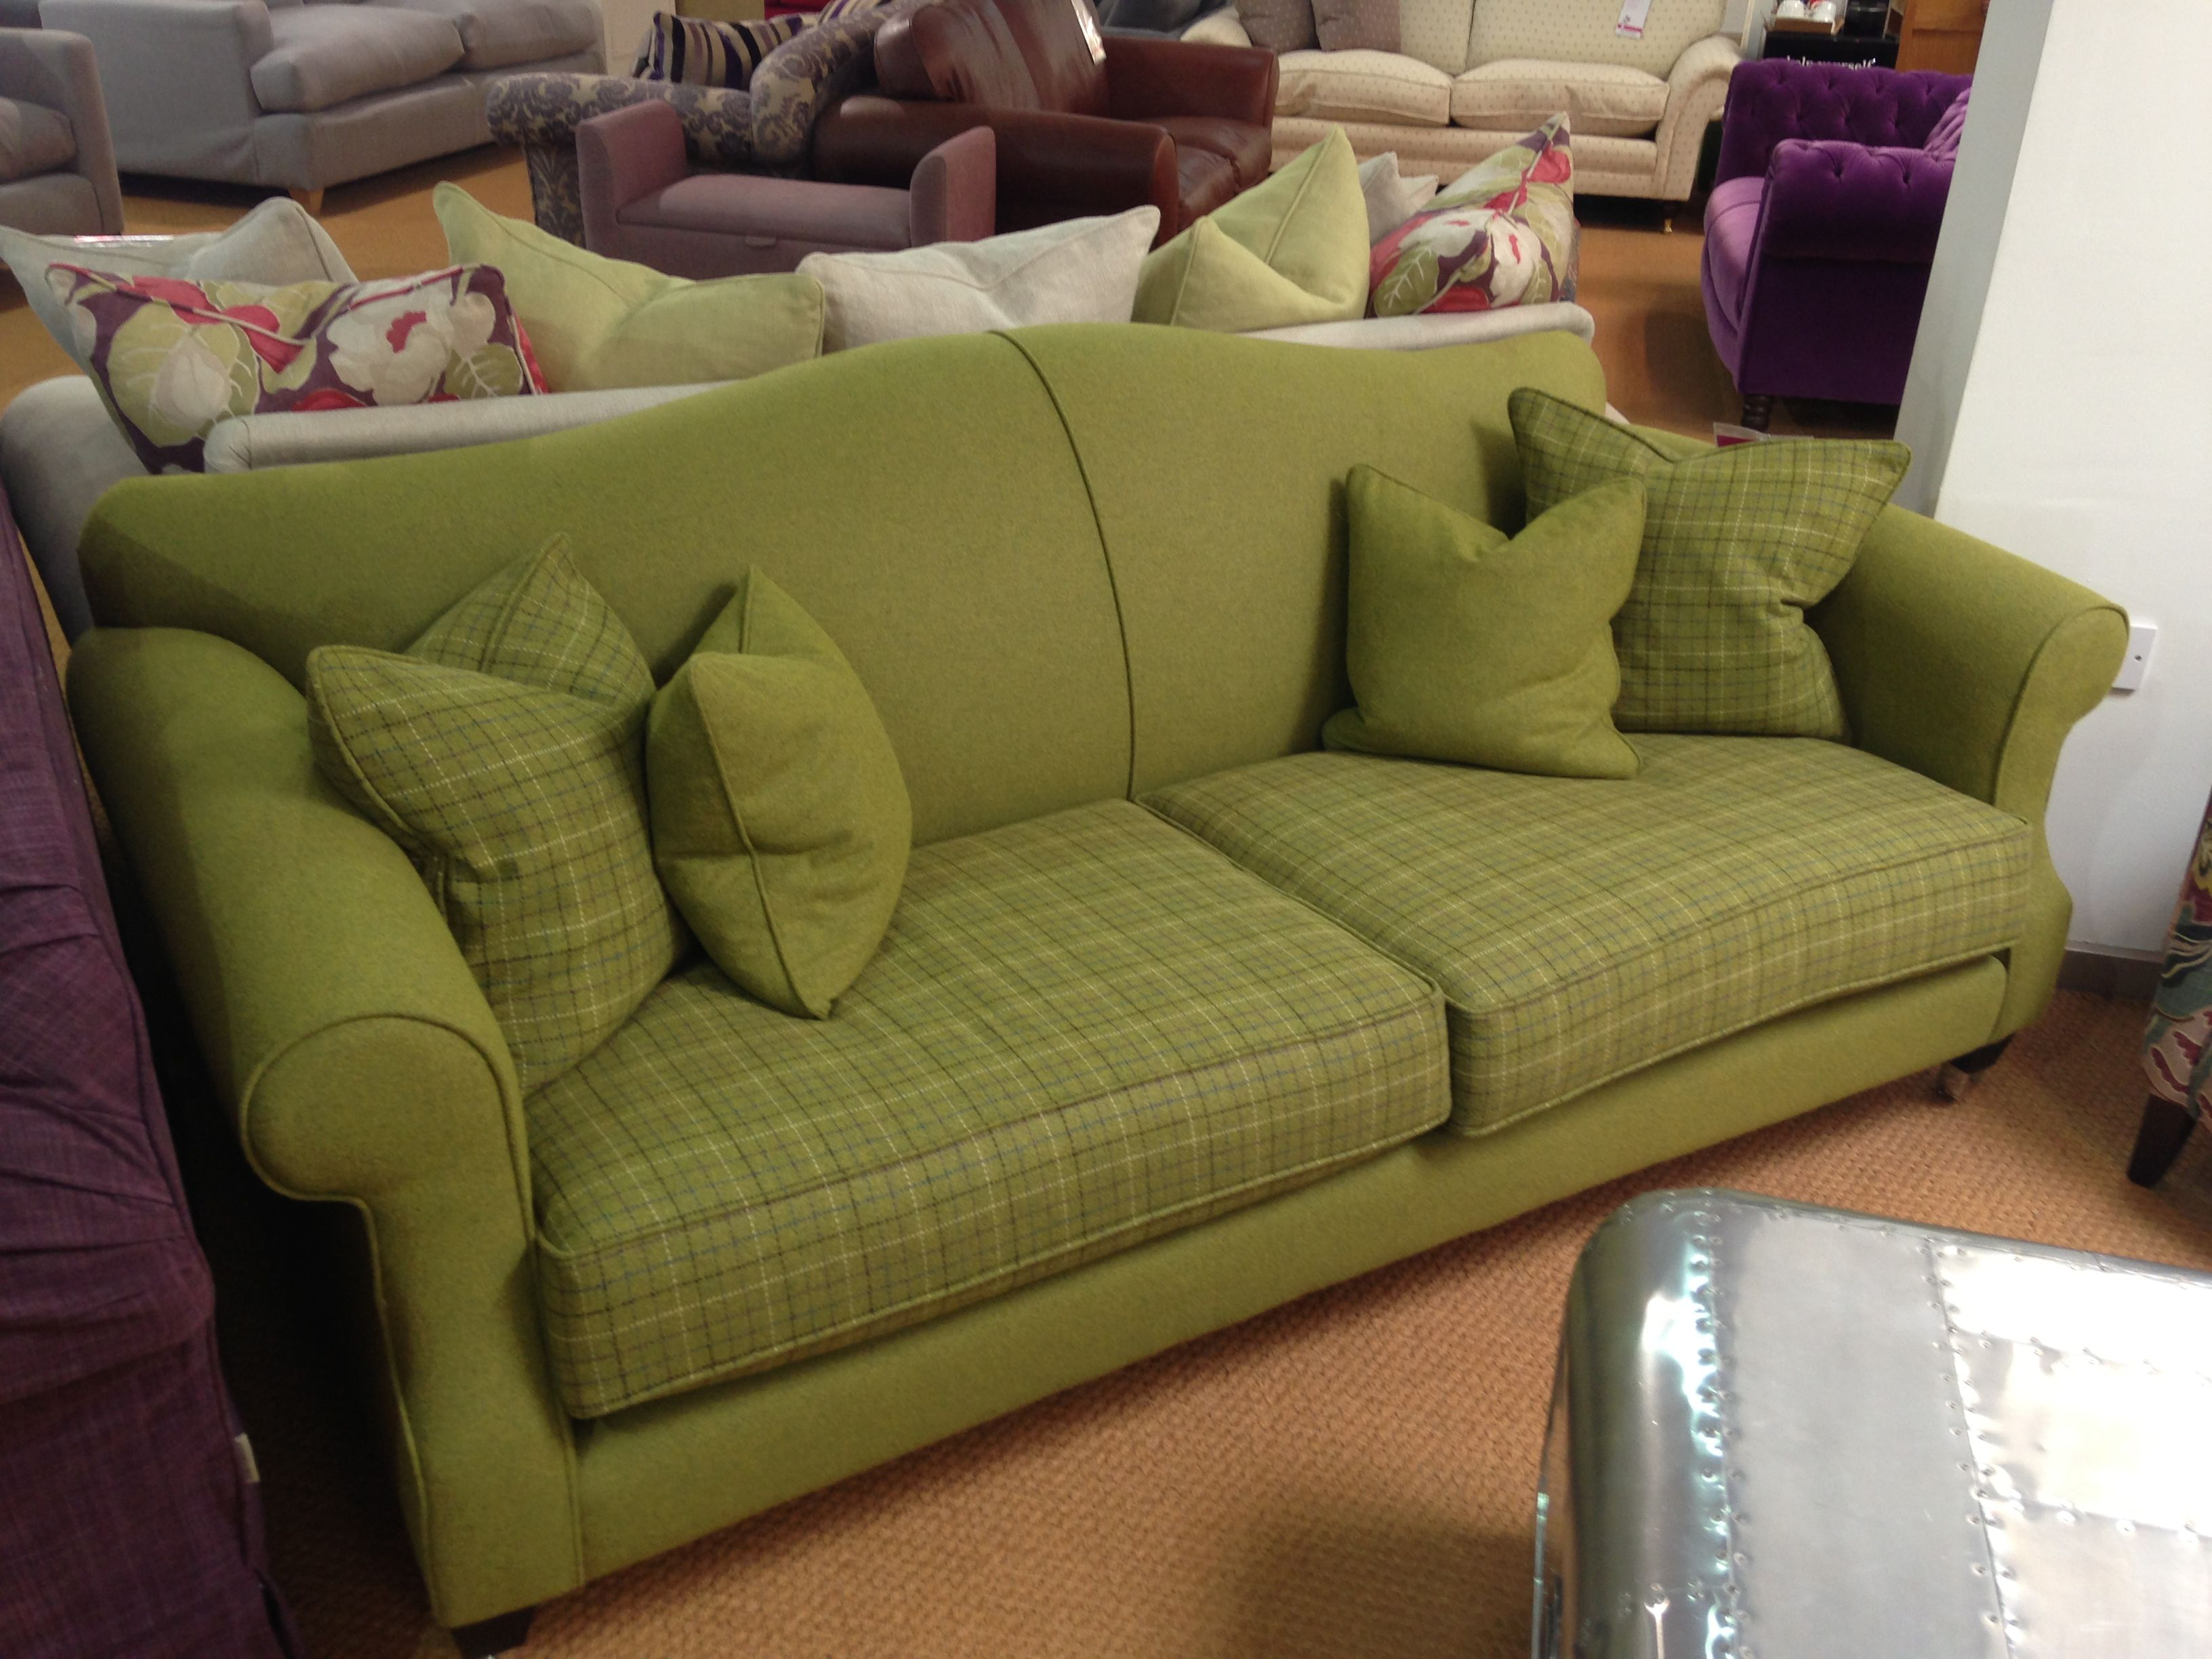 Dashing Duke sofa in Designers Guild Cheviot Plain & Tweed